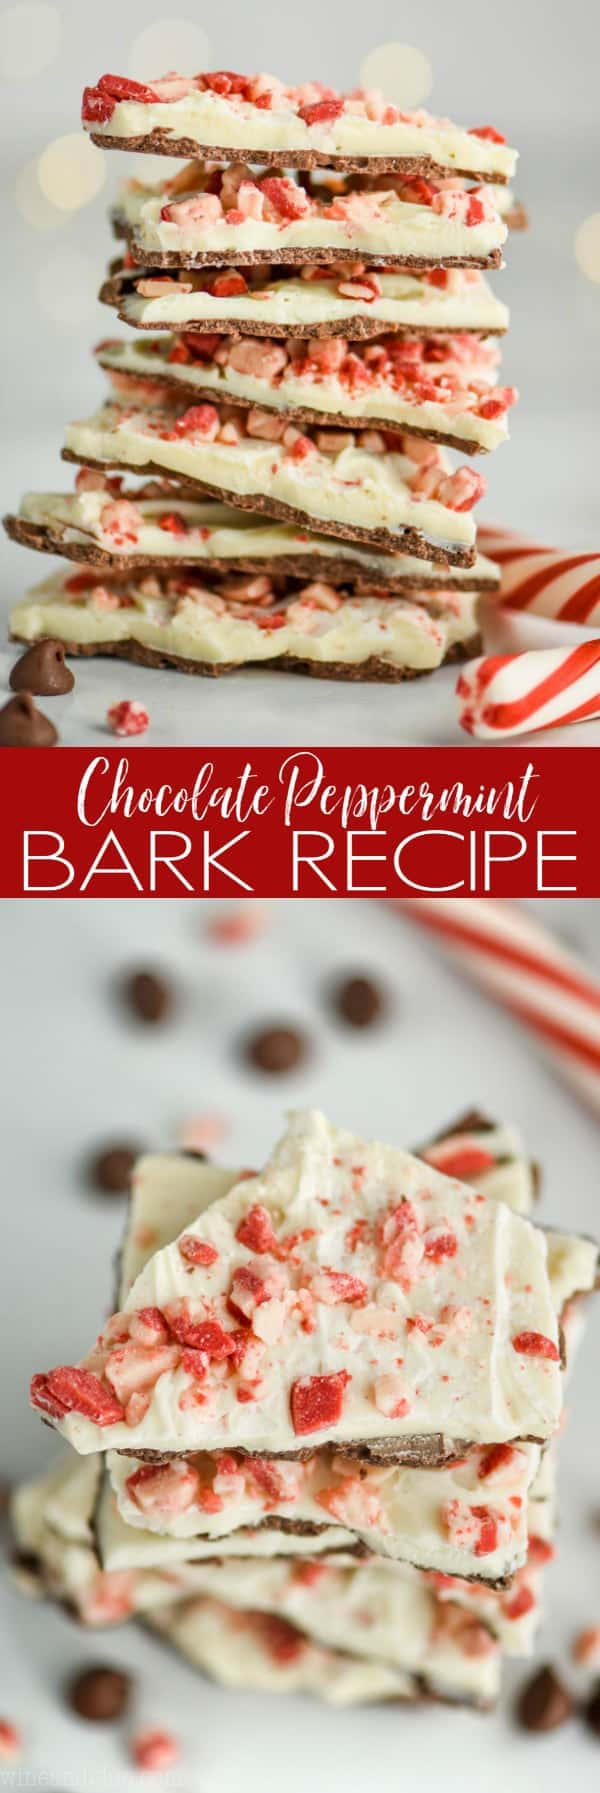 stack of chocolate peppermint bark